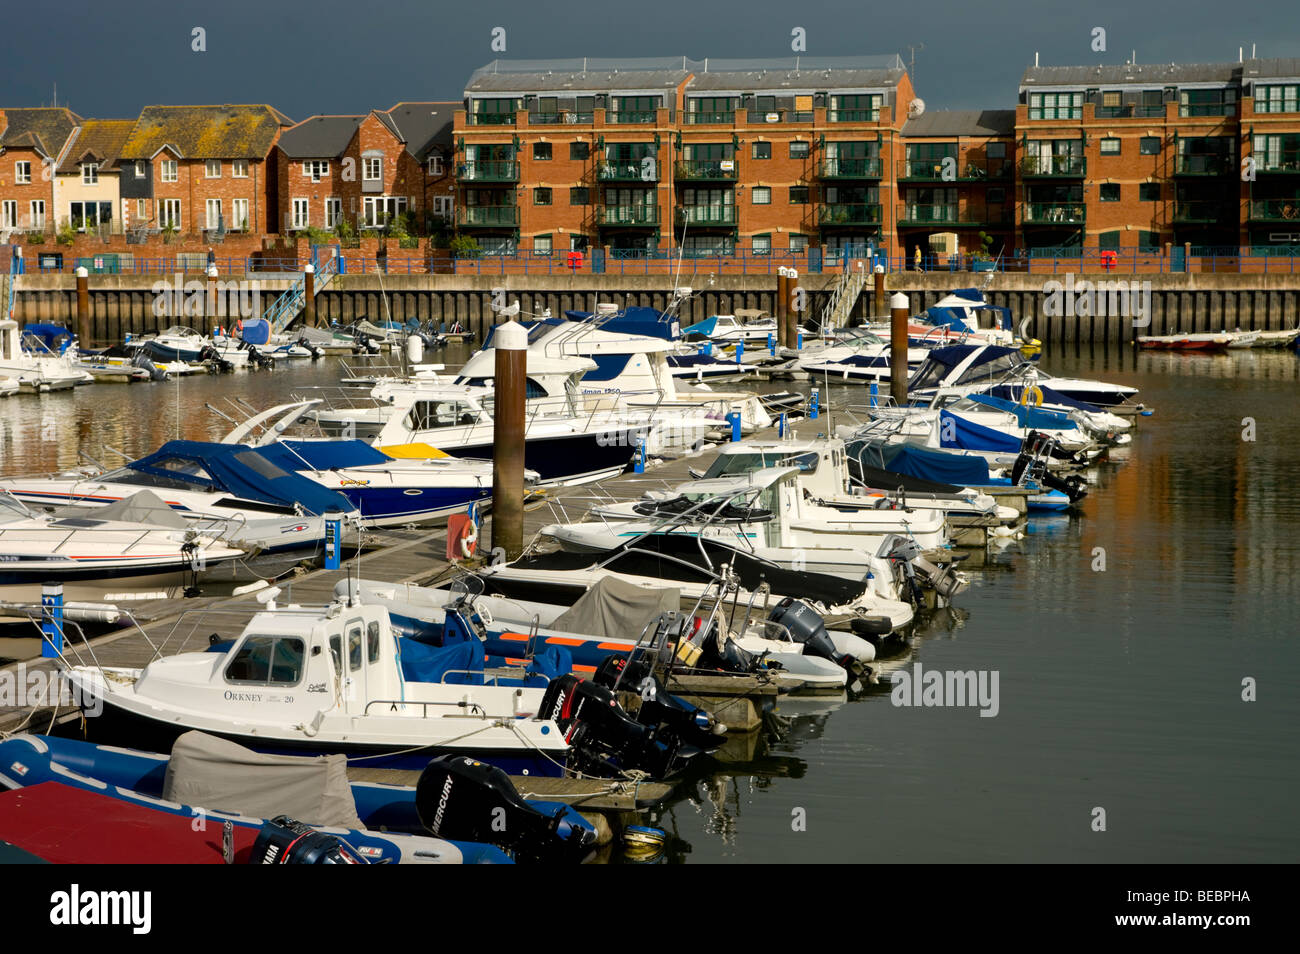 europe, uk, england, devon, Exmouth - Stock Image